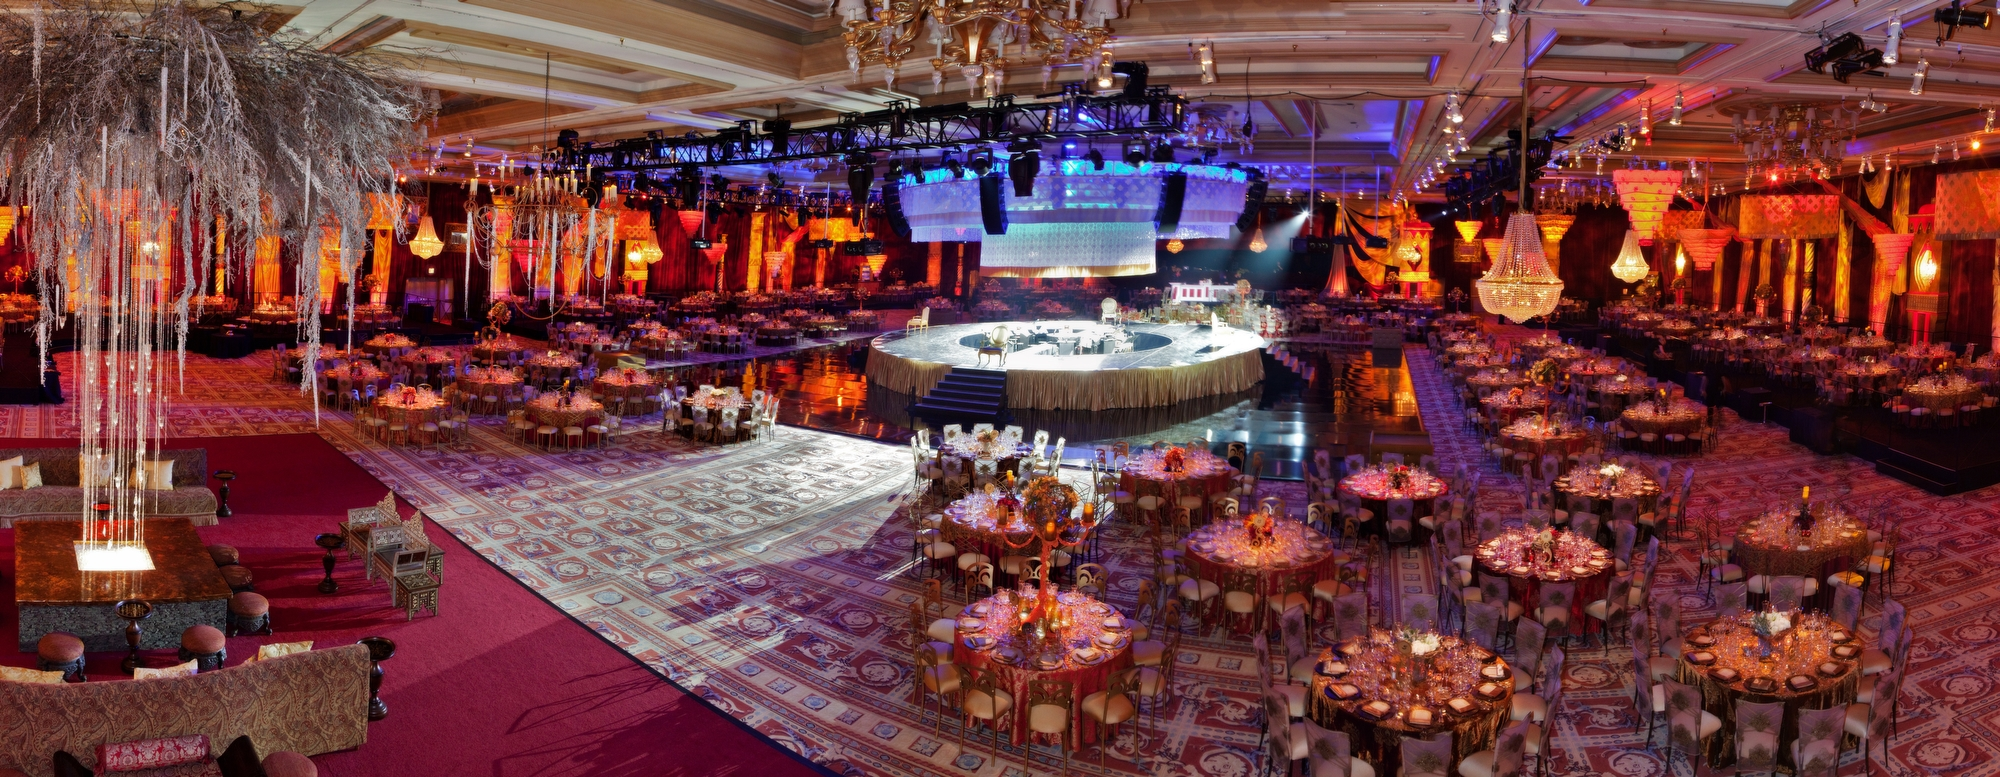 Bellagio Events